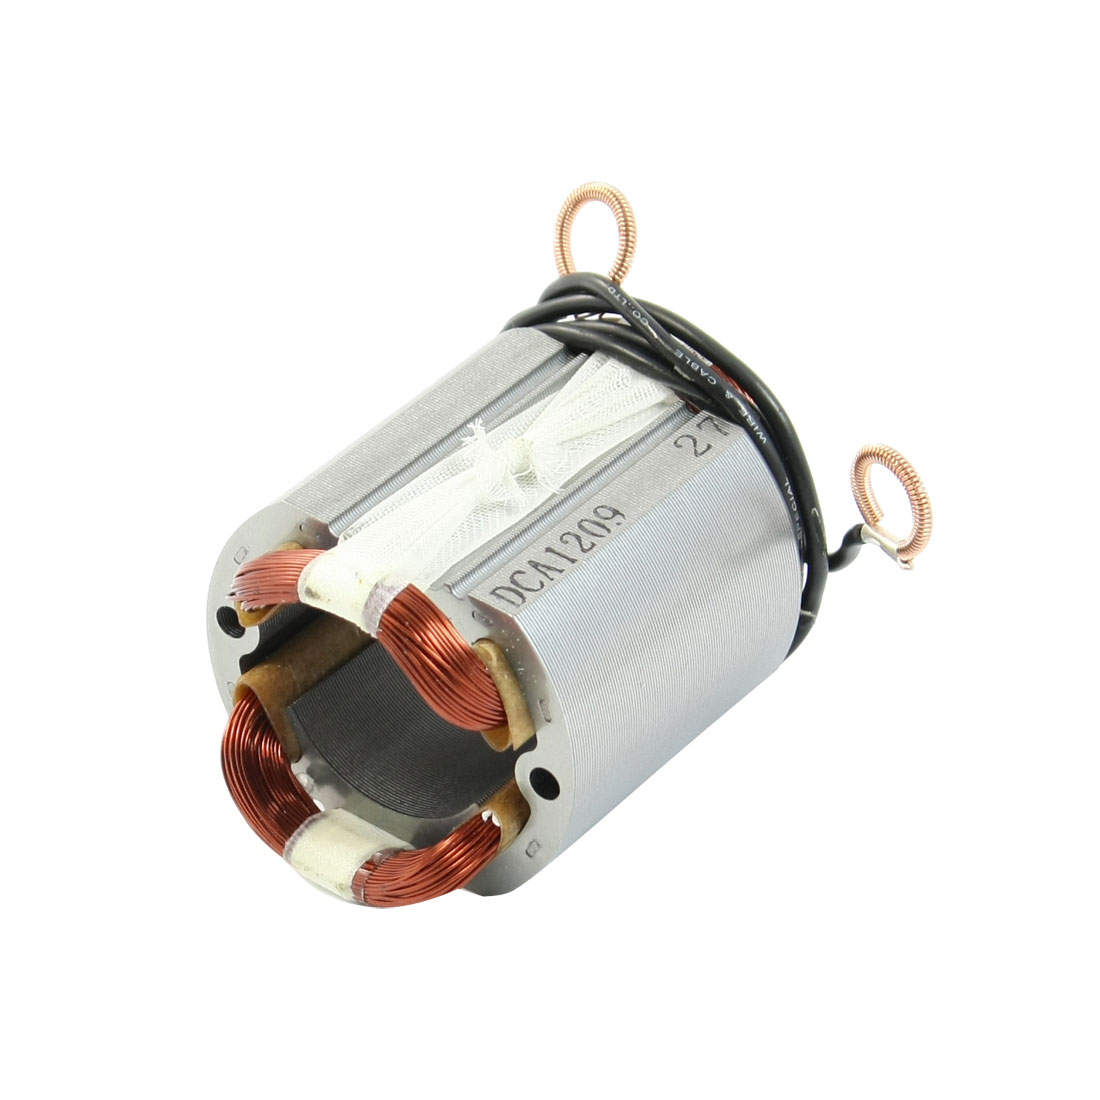 AC 220V Copper 32mm Rotor Core Motor Stator for Hitachi F-20A/P20SB Electric Grinder